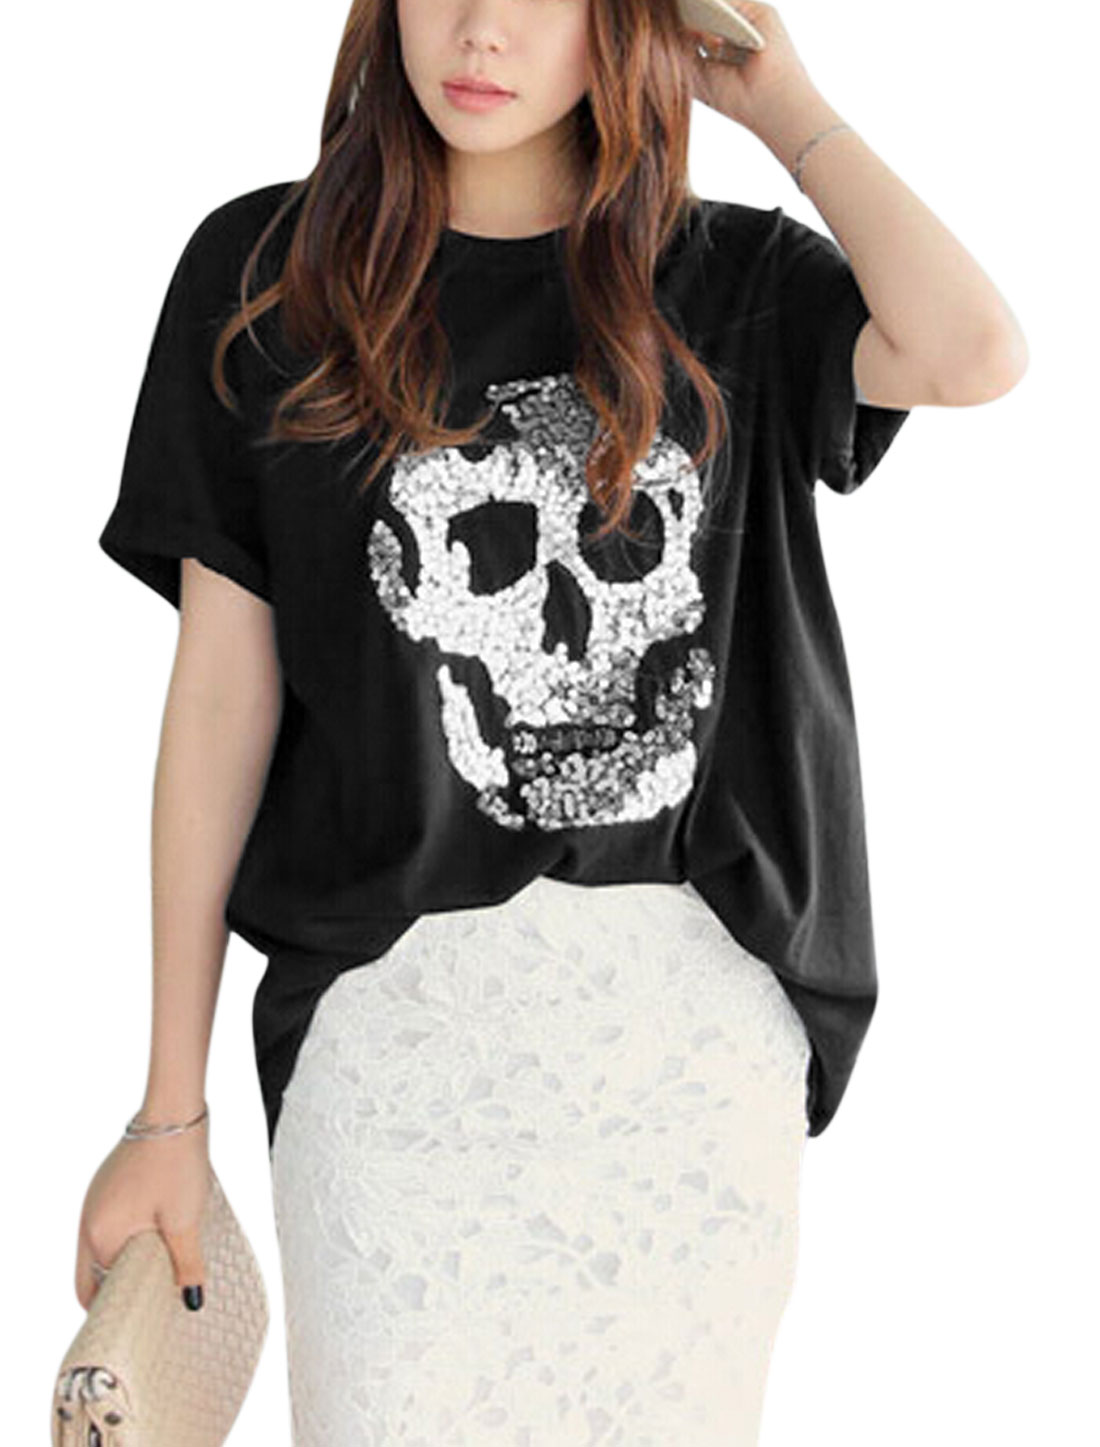 Women Sequined Skull Applique Short Sleeves Casual T-Shirts Black XS